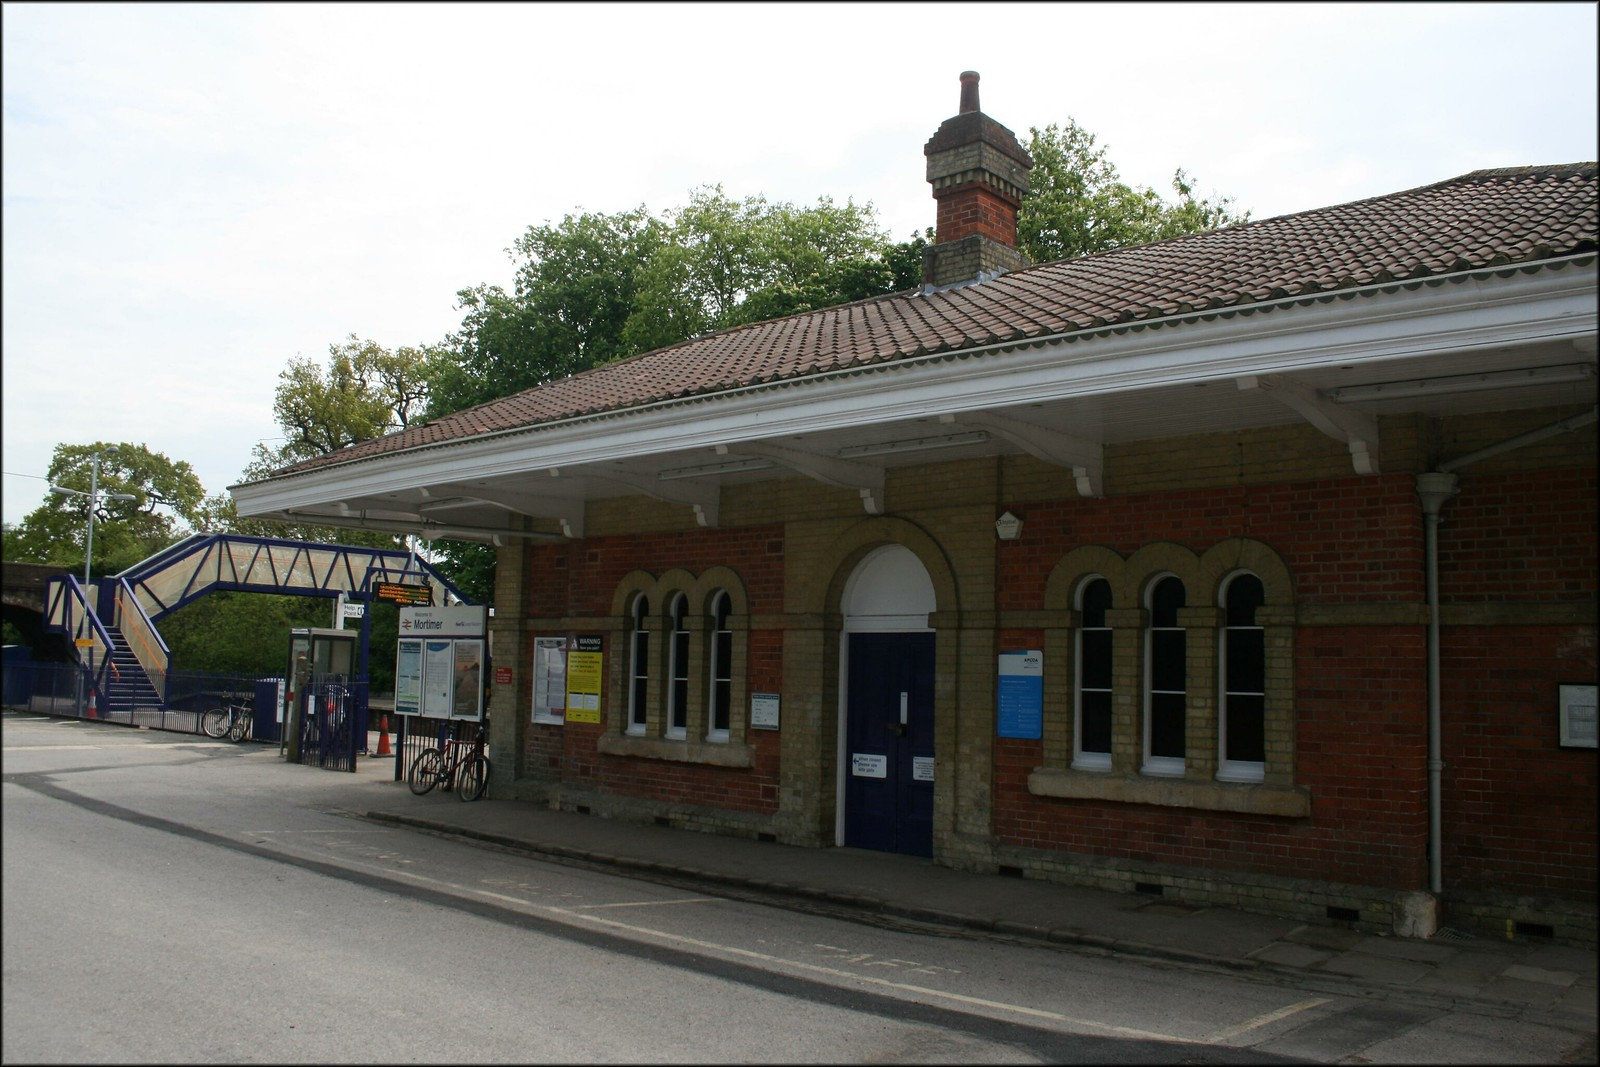 Mortimer Station On the line between Basingstoke and Reading.